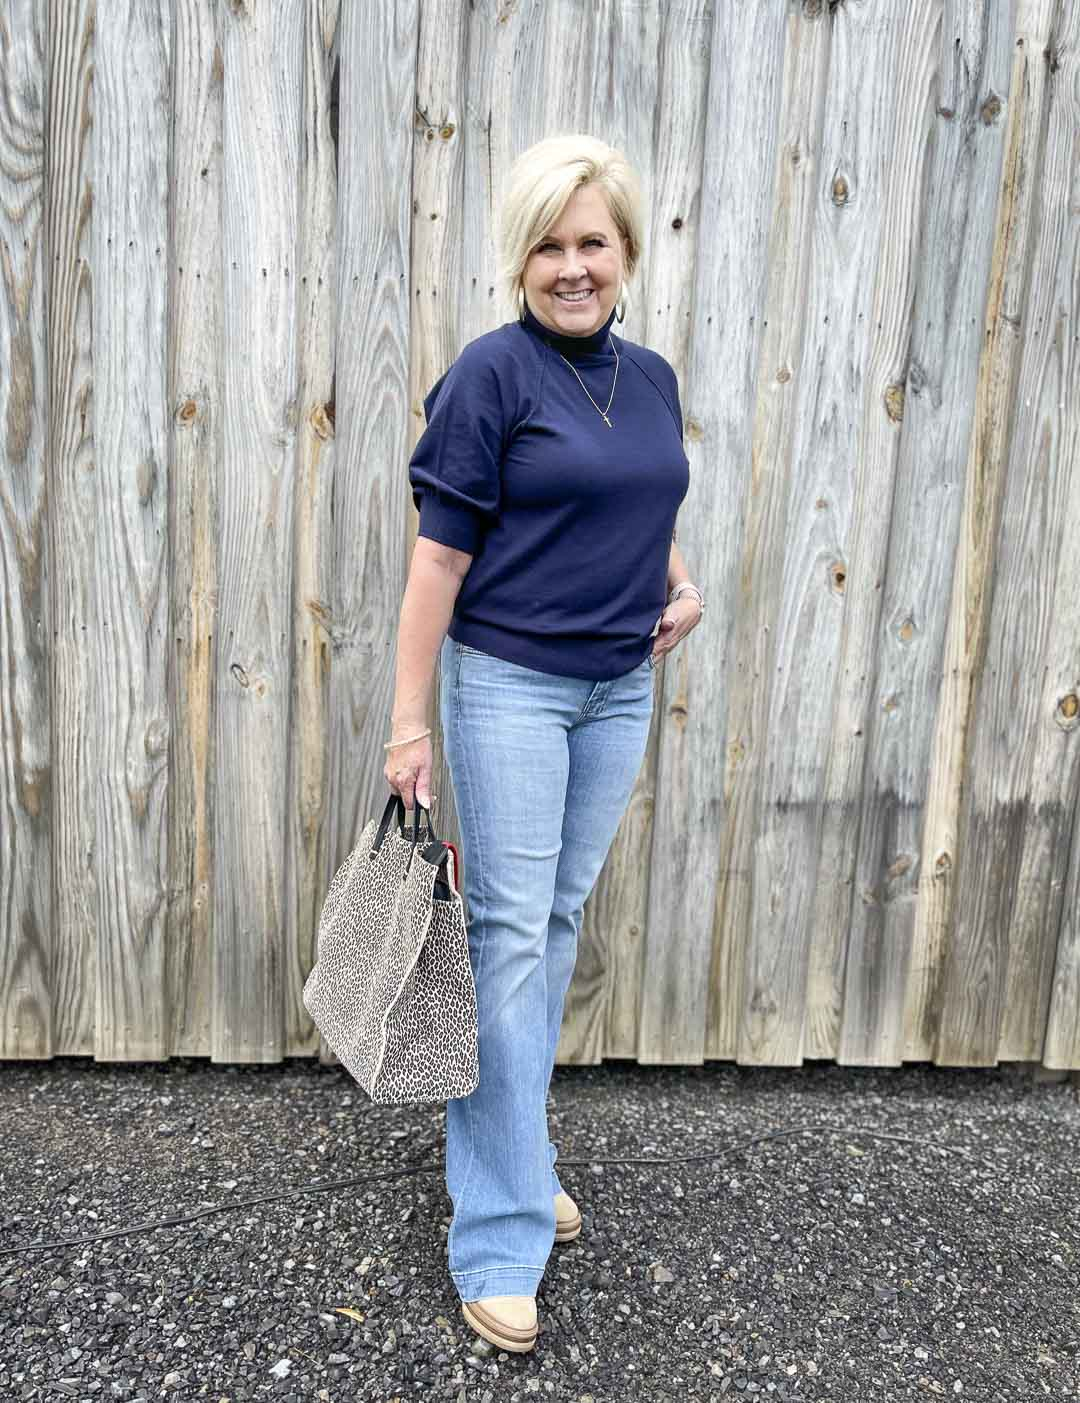 Over 40 Fashion Blogger, Tania Stephens, is wearing a navy puff sleeve turtleneck sweater with a pair of flare jeans and carrying a large tote bag